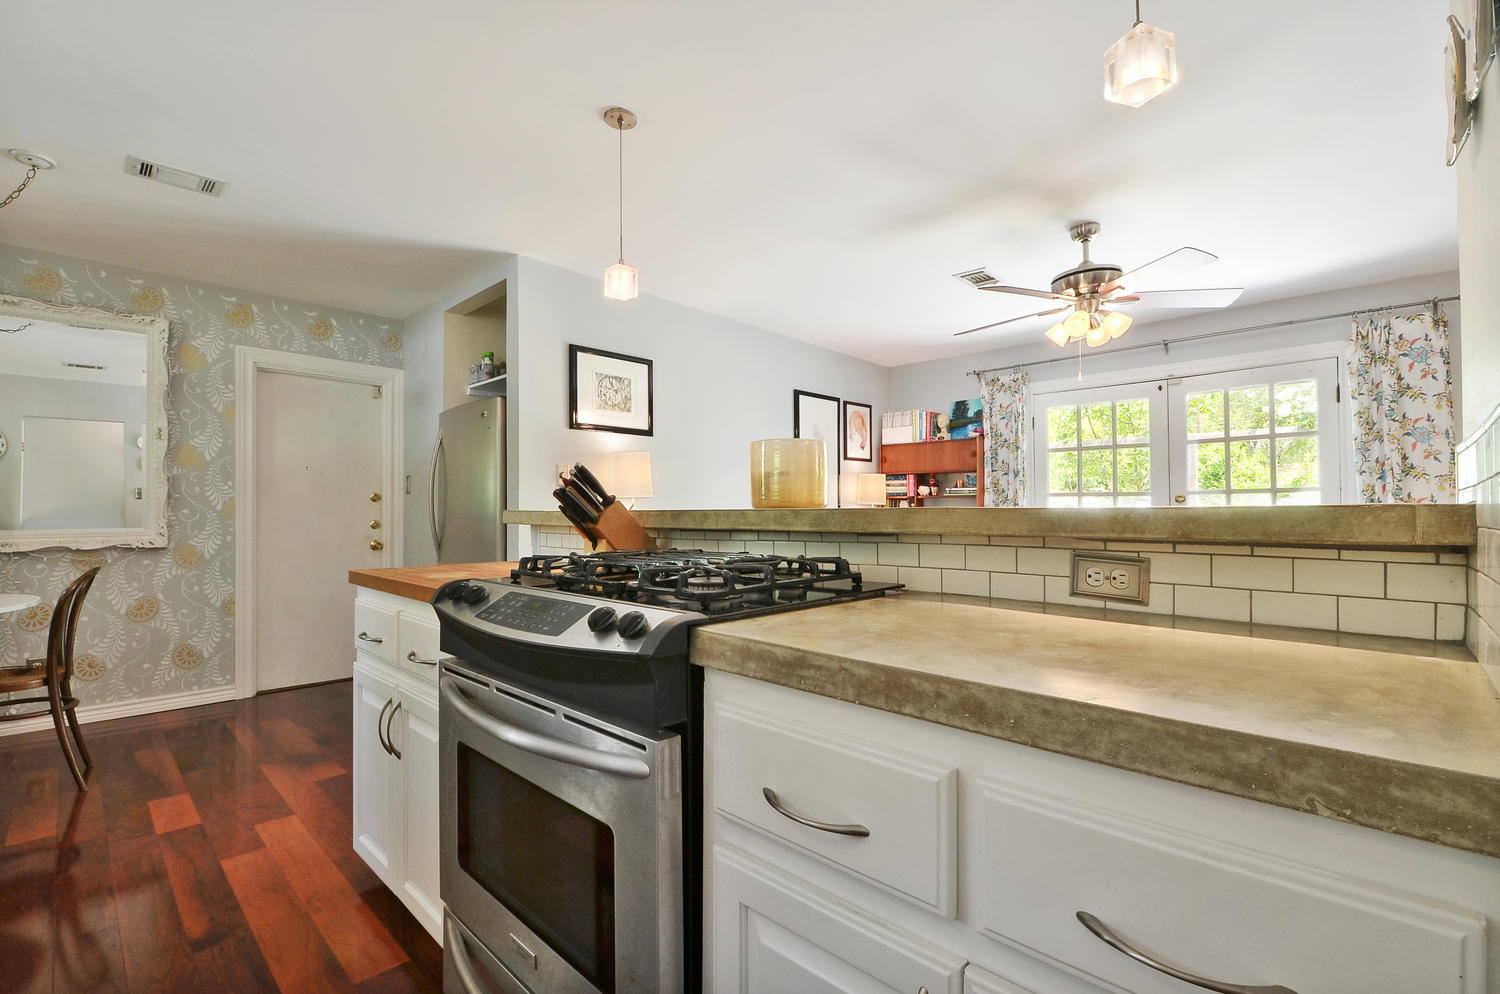 4908 Enchanted-large-013-13-Kitchen and Breakfast 004-1500x994-72dpi.jpg